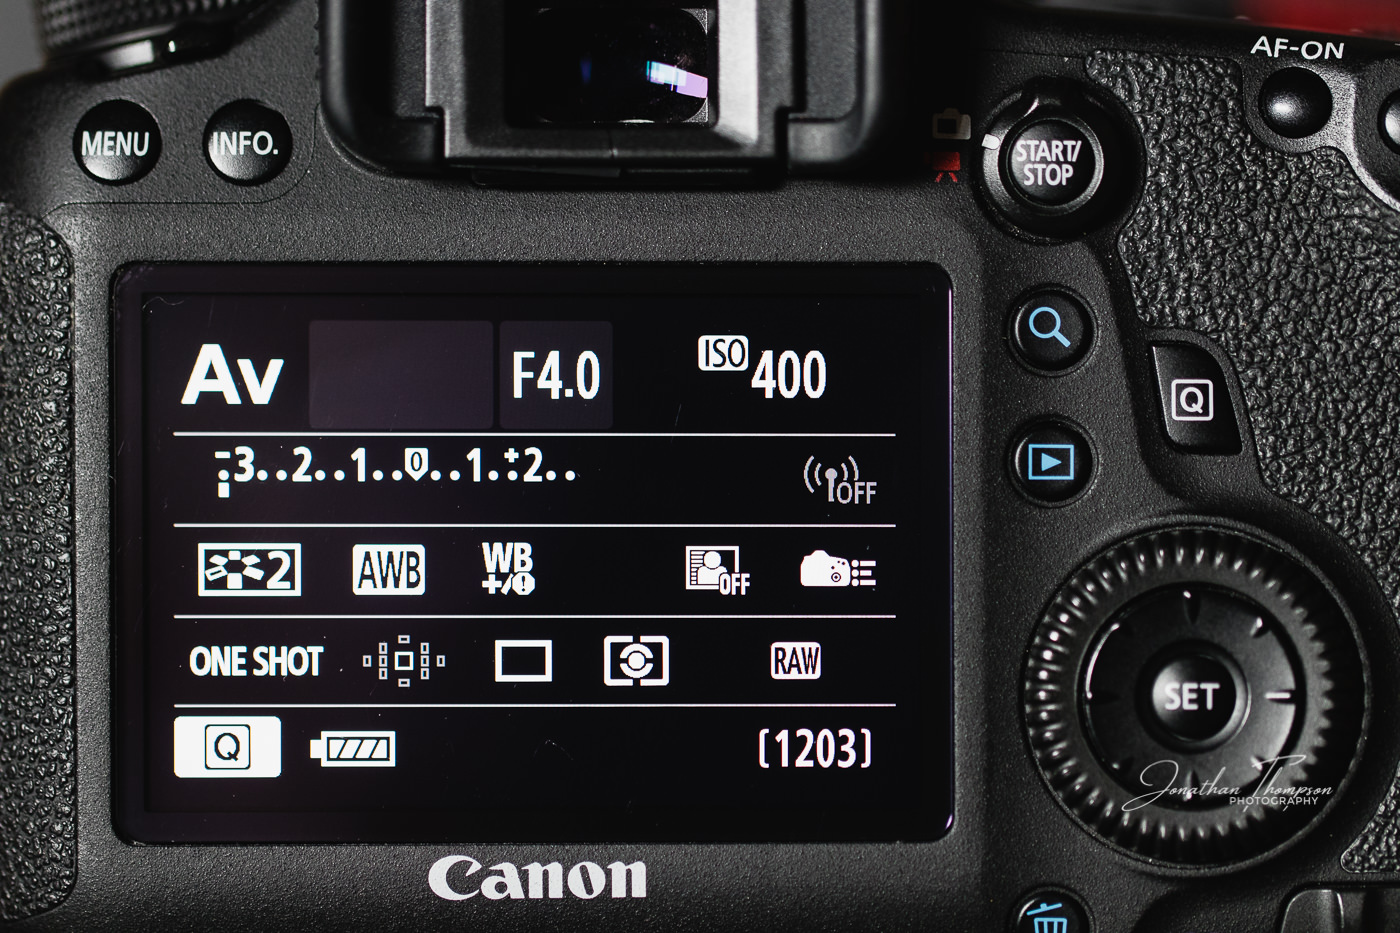 Canon DSLR rear screen displaying Aperture Priority camera mode